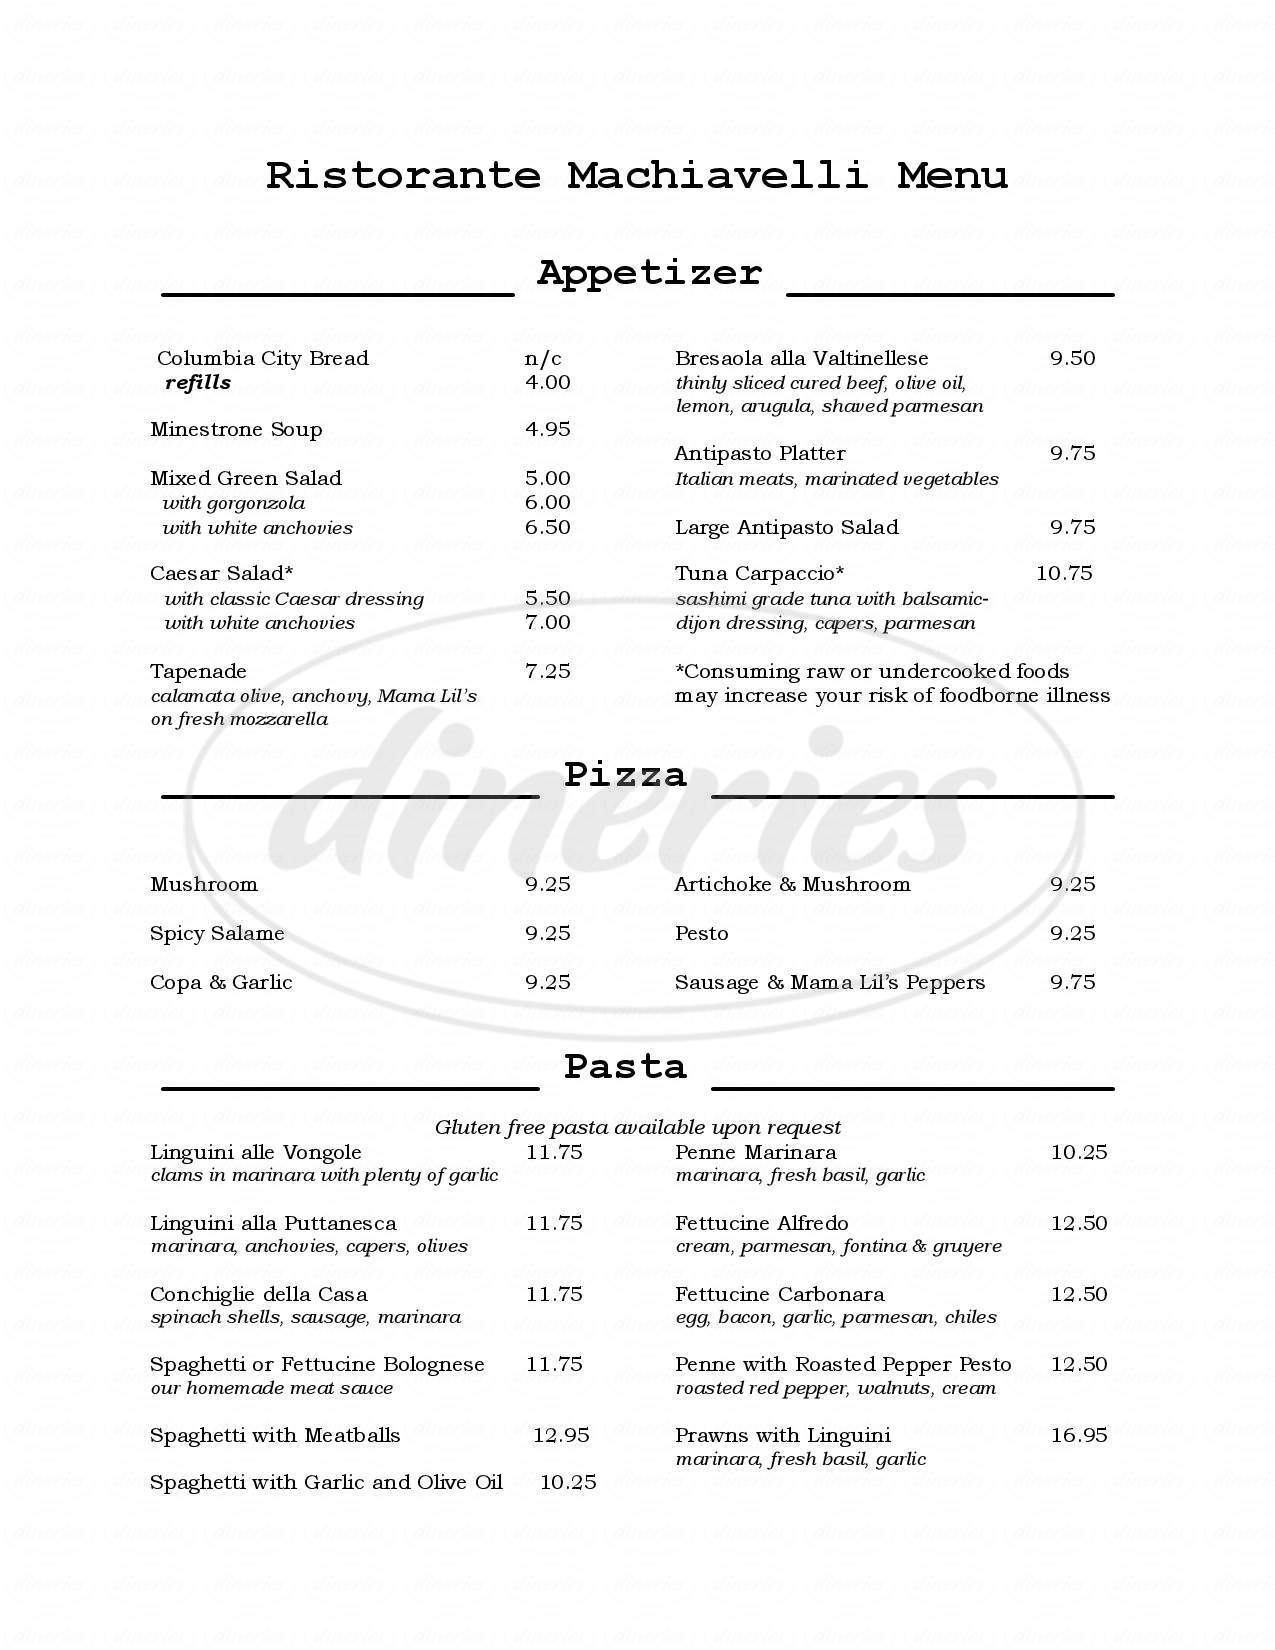 menu for Ristorante Machiavelli